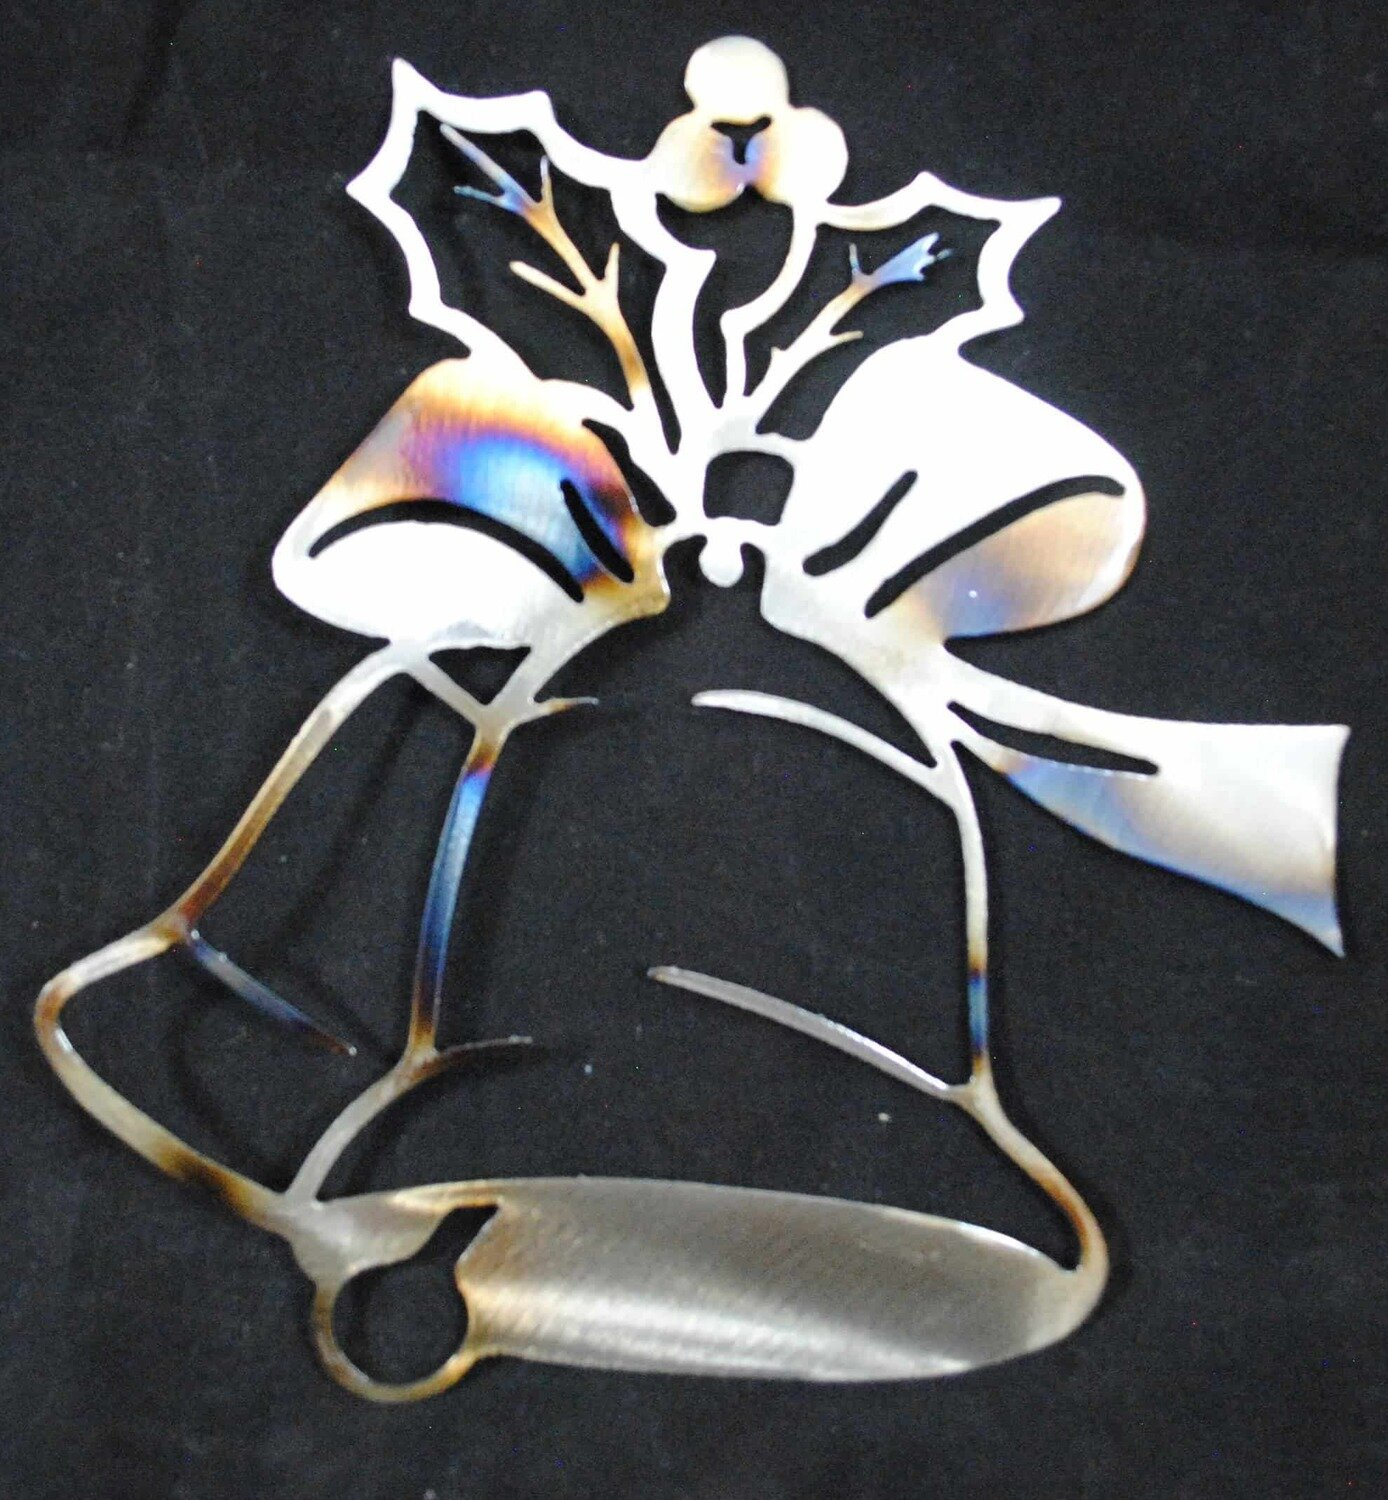 3 Holly Berries with Bow Tie on Big Bell, Metal Wall Art Decor